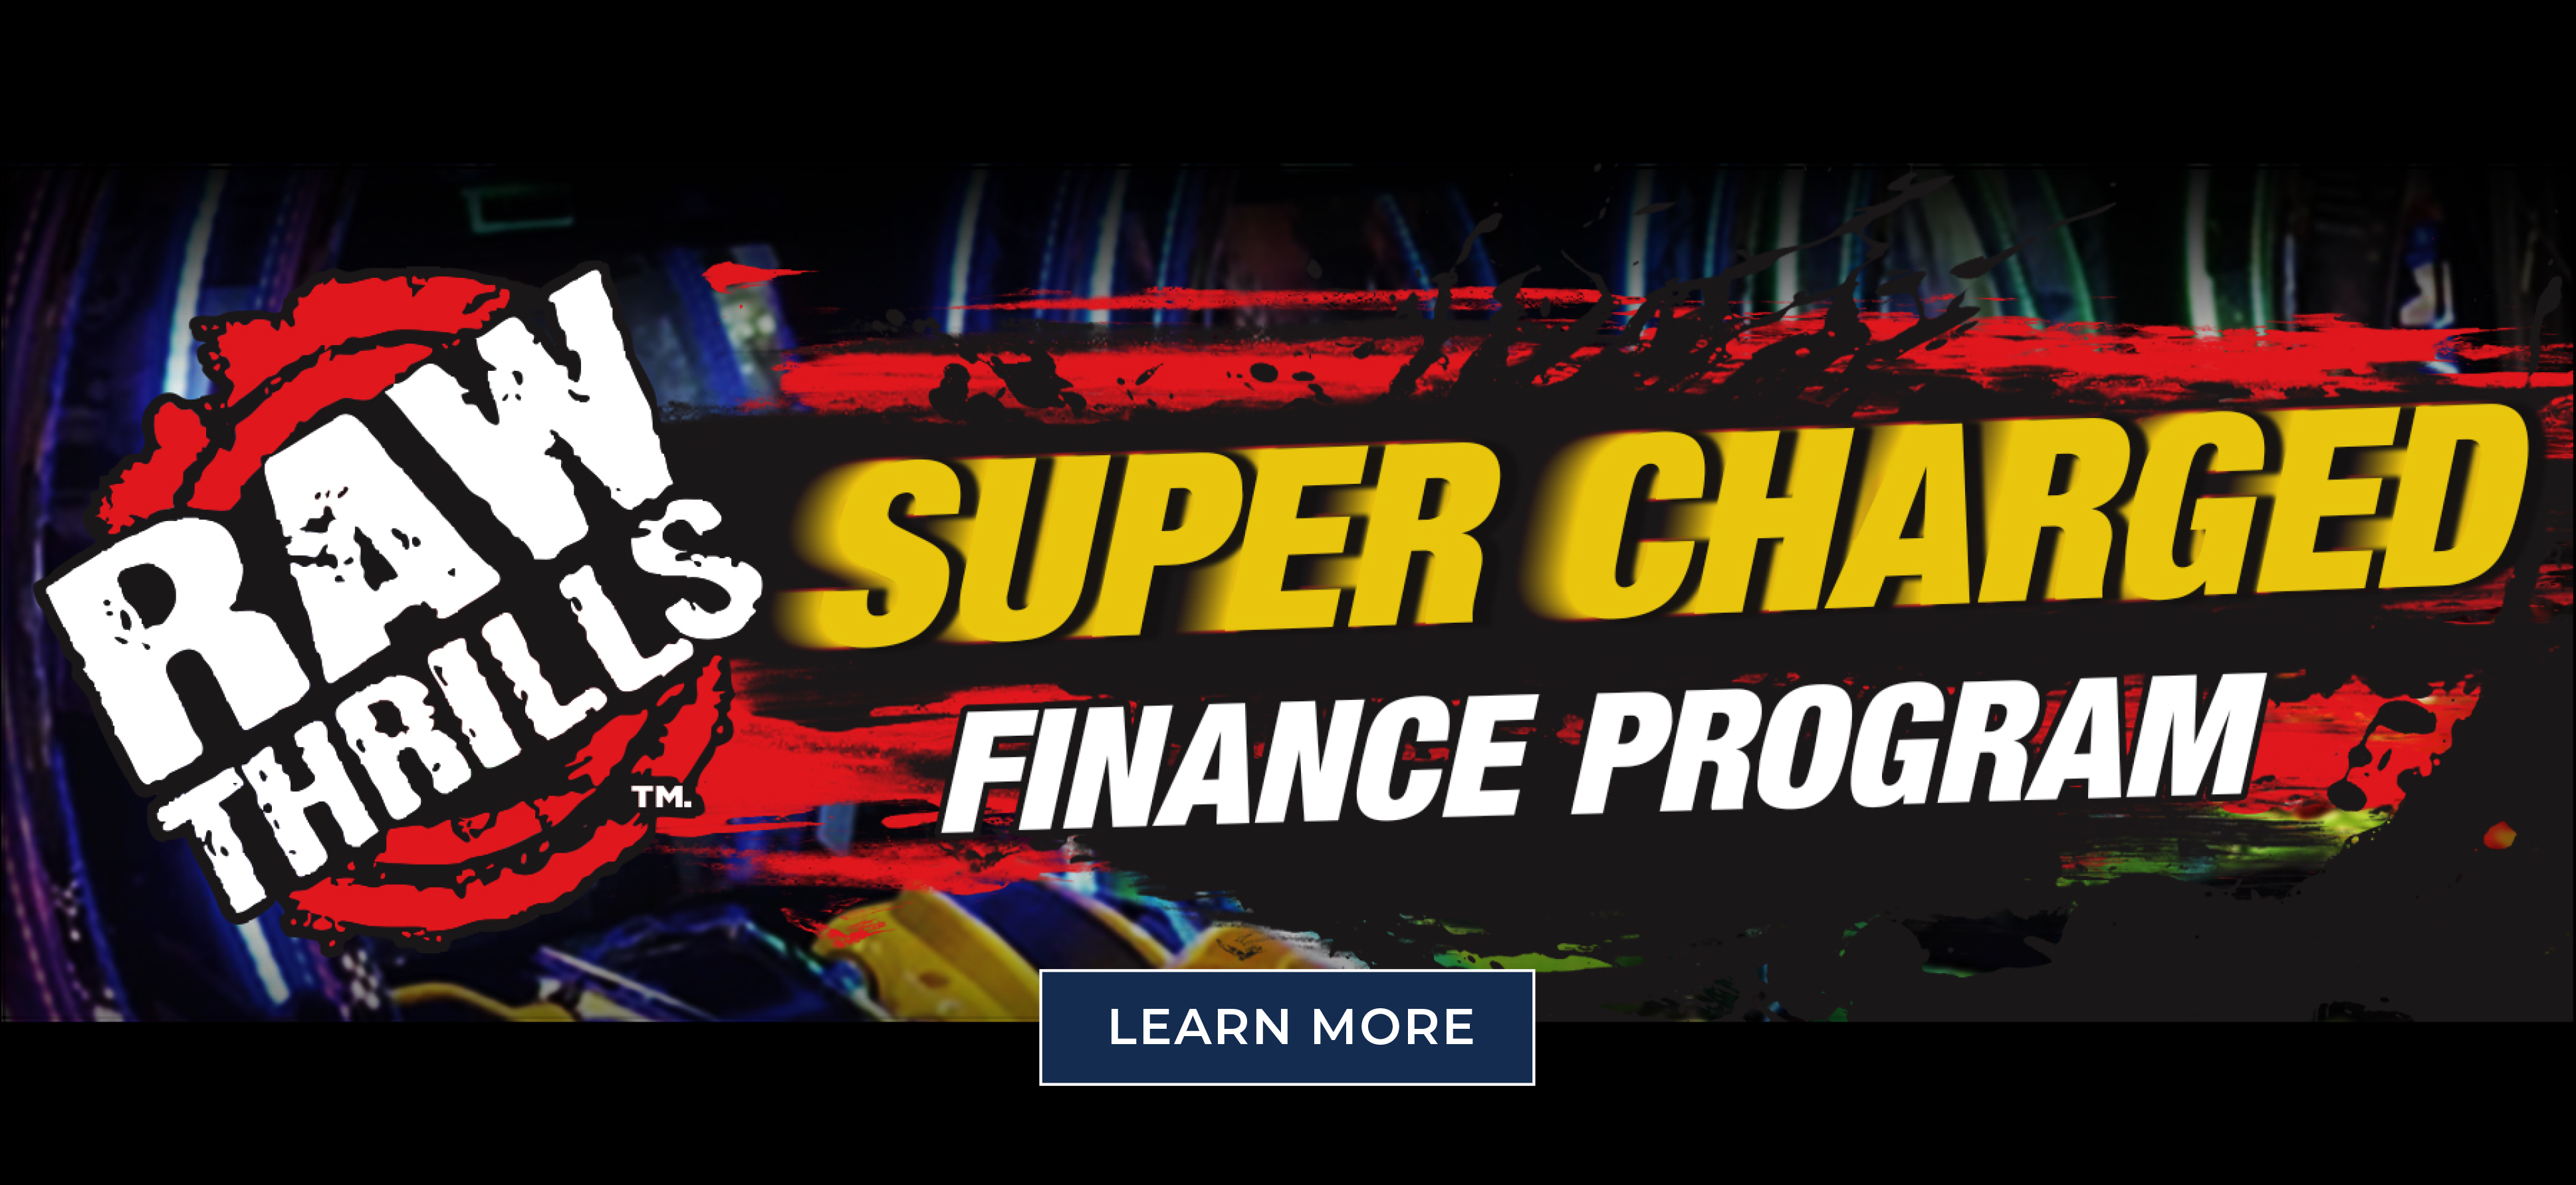 Raw Thrills' Super Charged Financing Special Promo